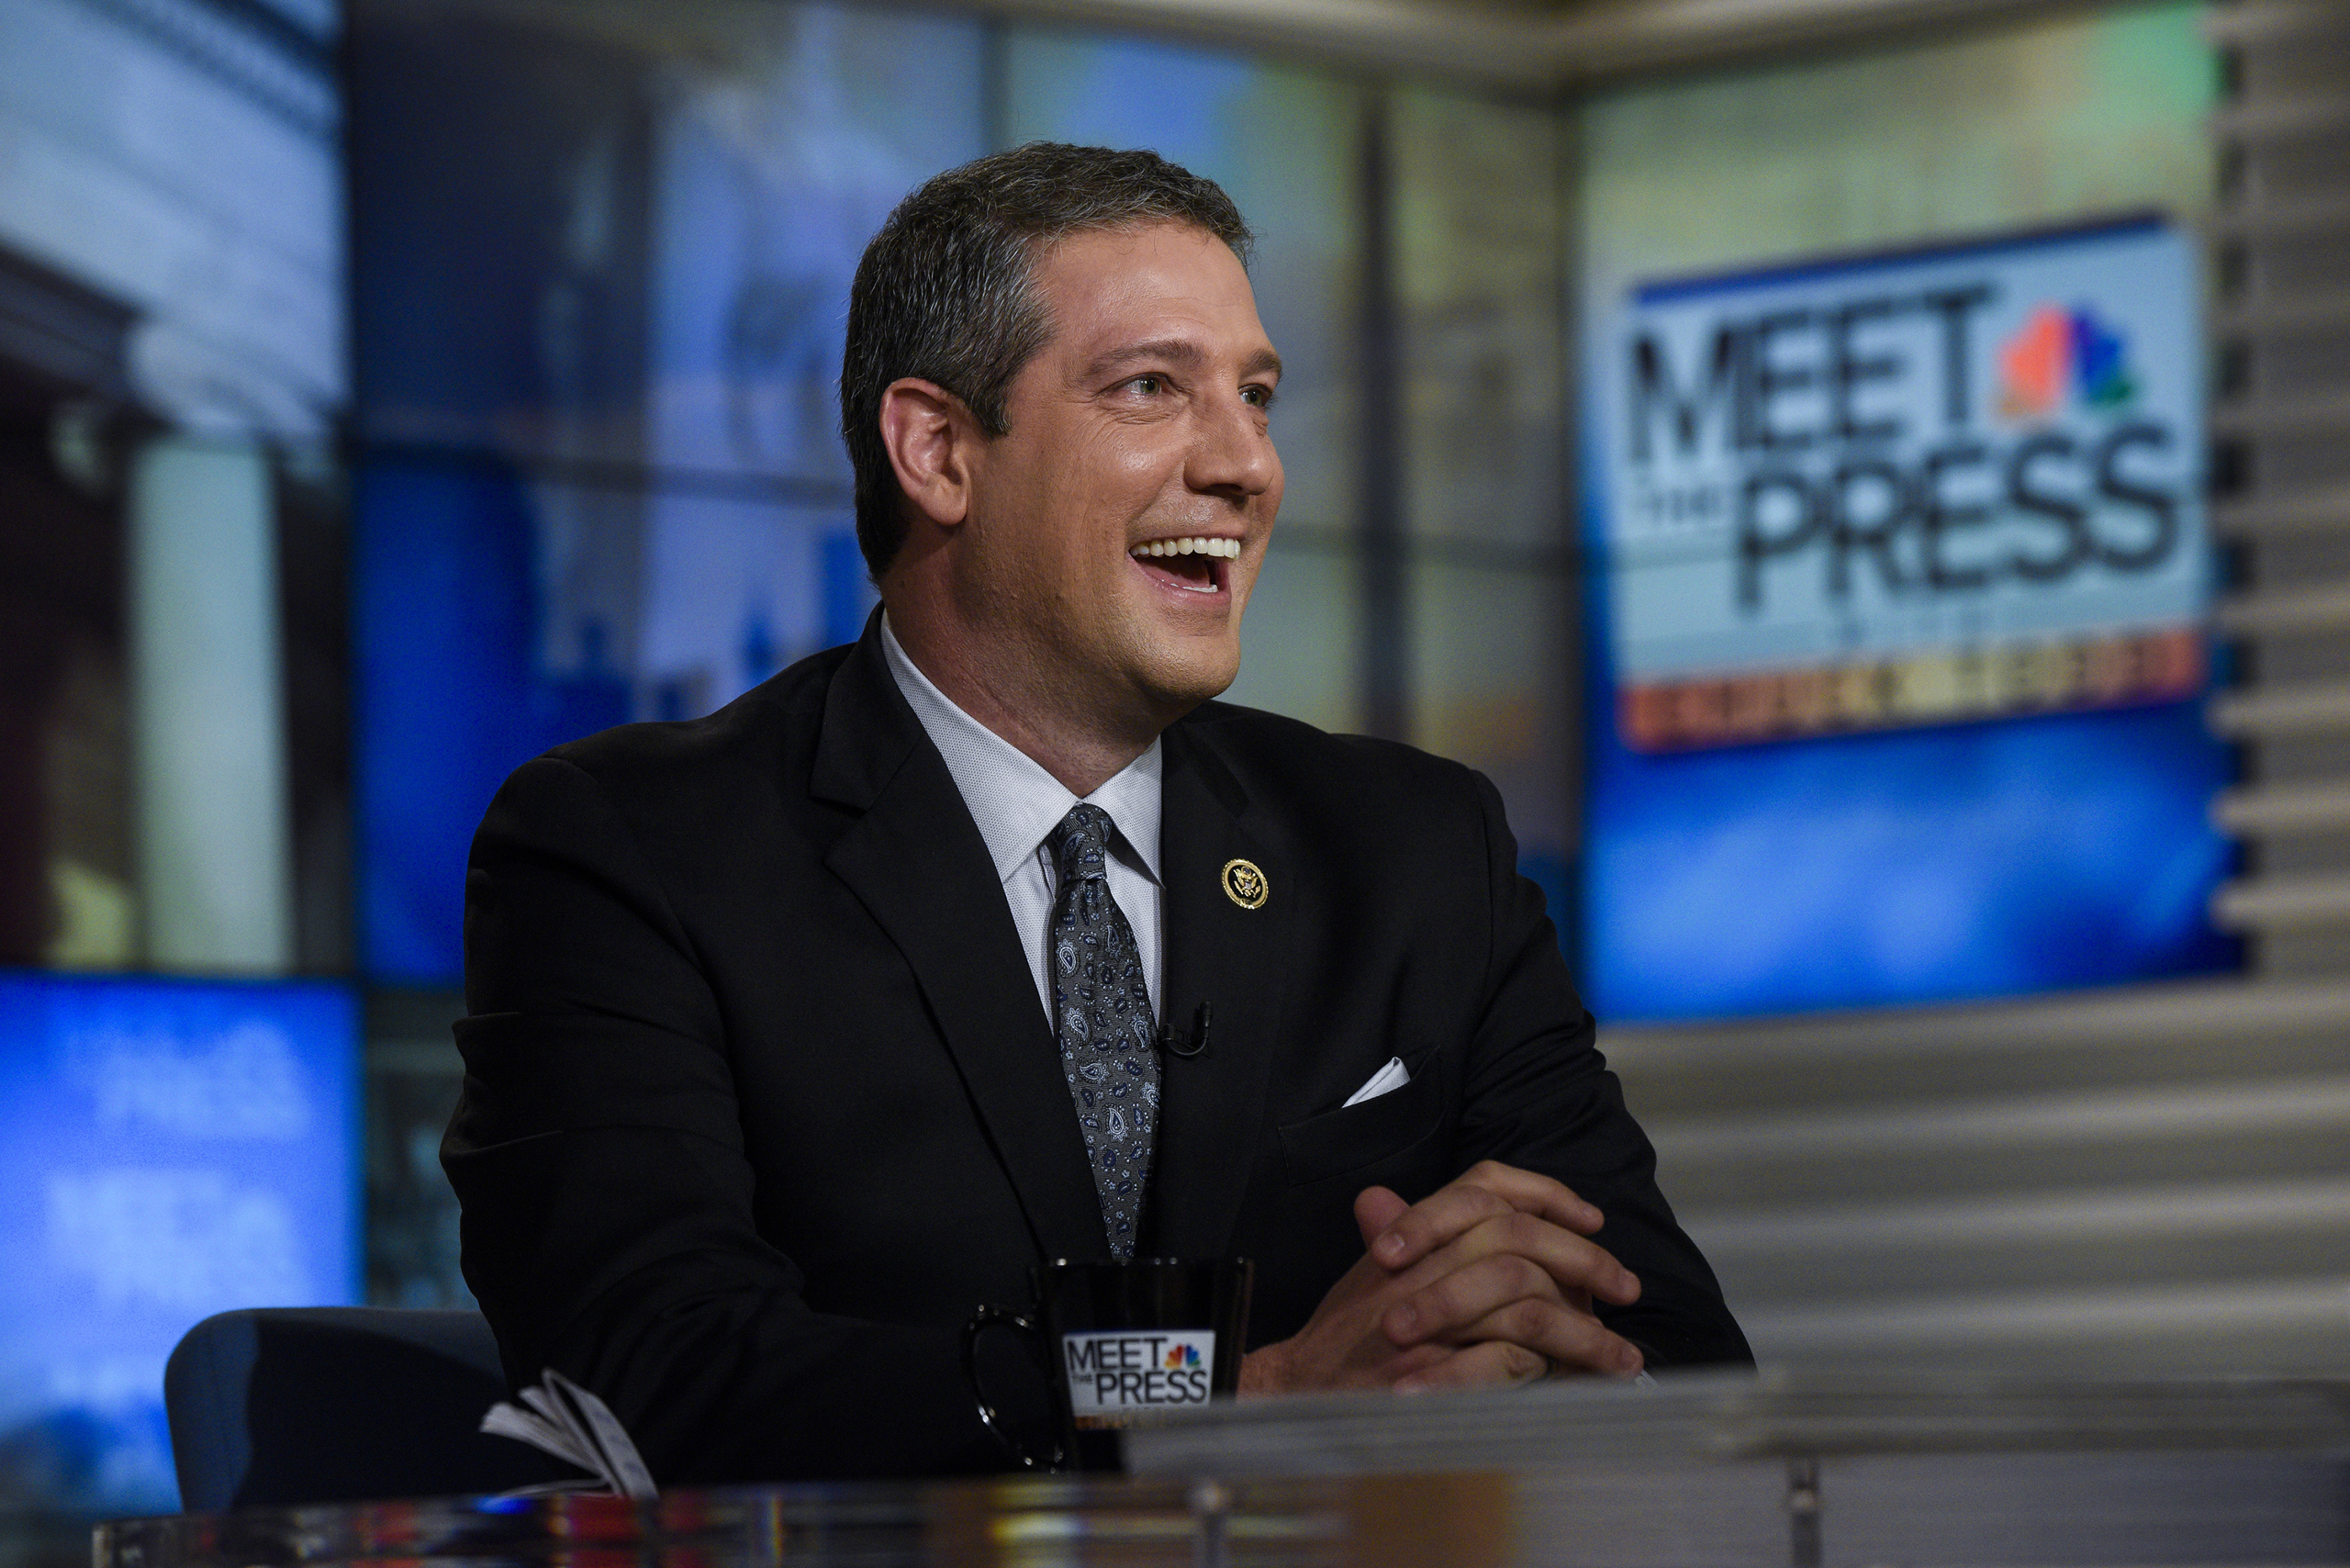 Rep. Tim Ryan appears on  Meet the Press  in Washington, D.C., on Nov. 27, 2016.